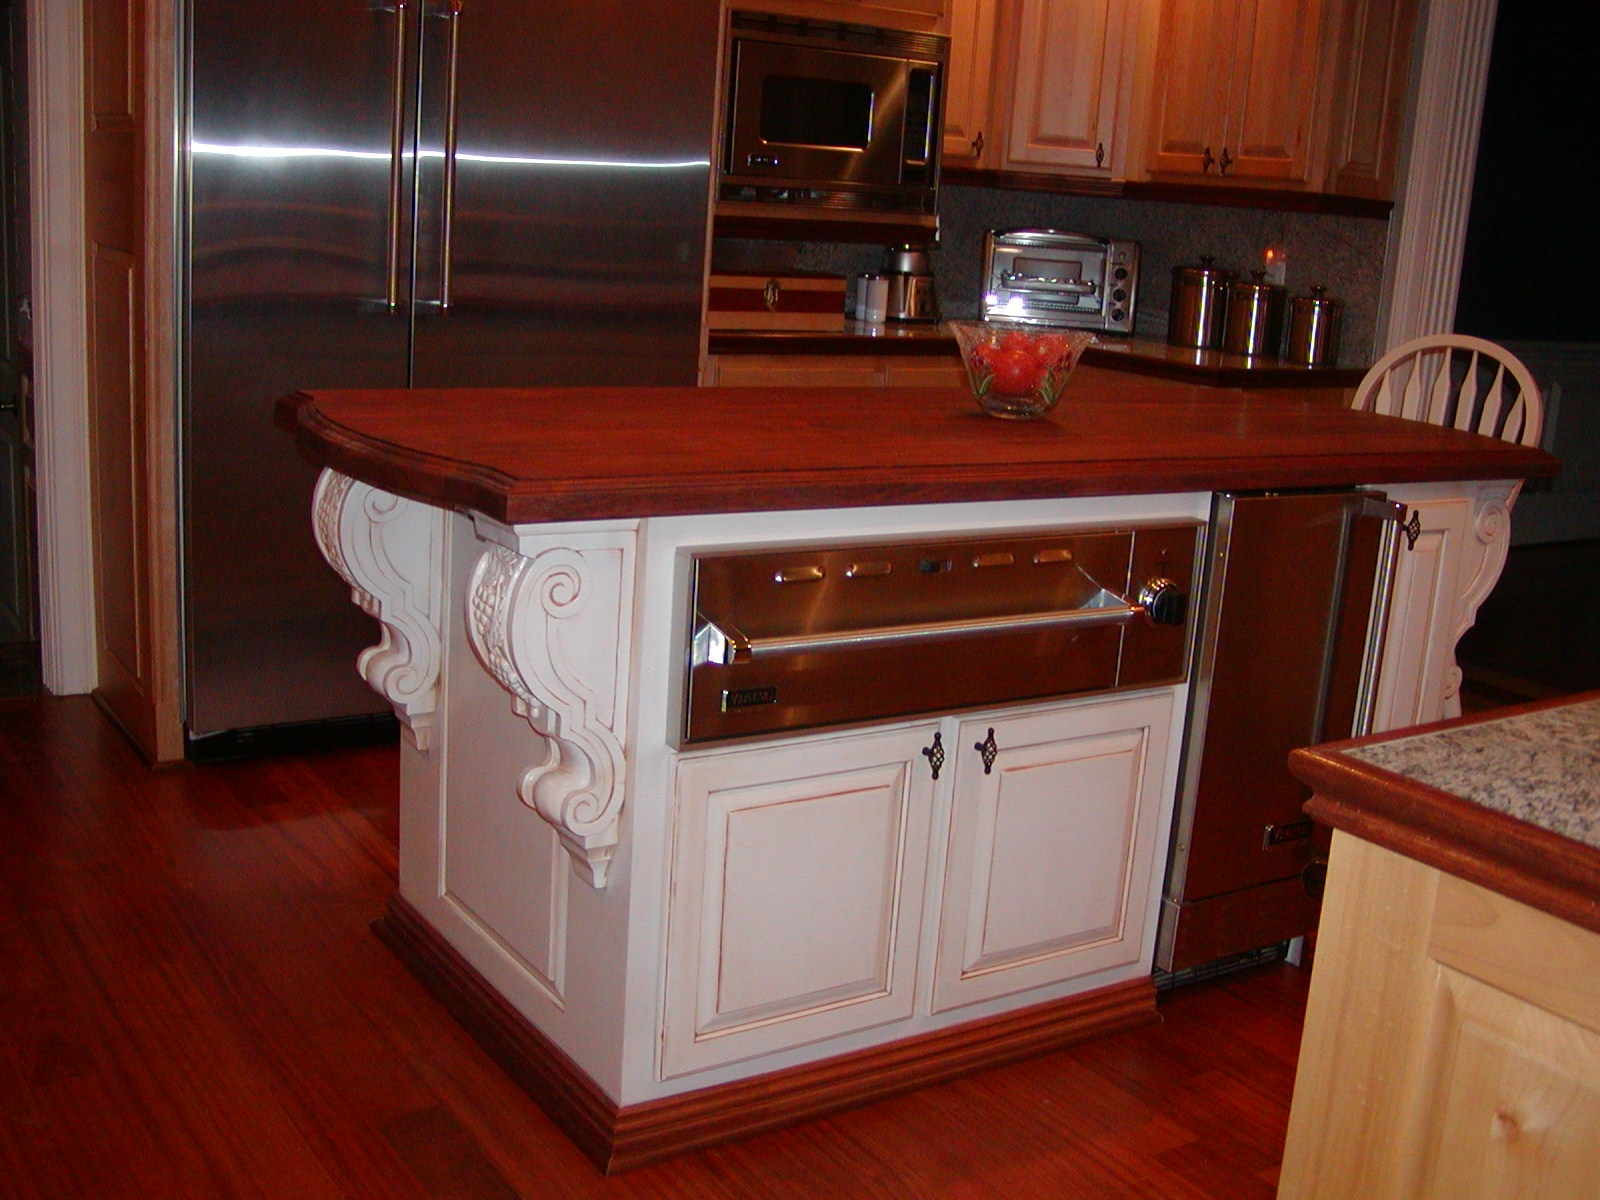 Countertop Warming Drawer Island 336 342 9268 J And S Home Builders And Cabinetry